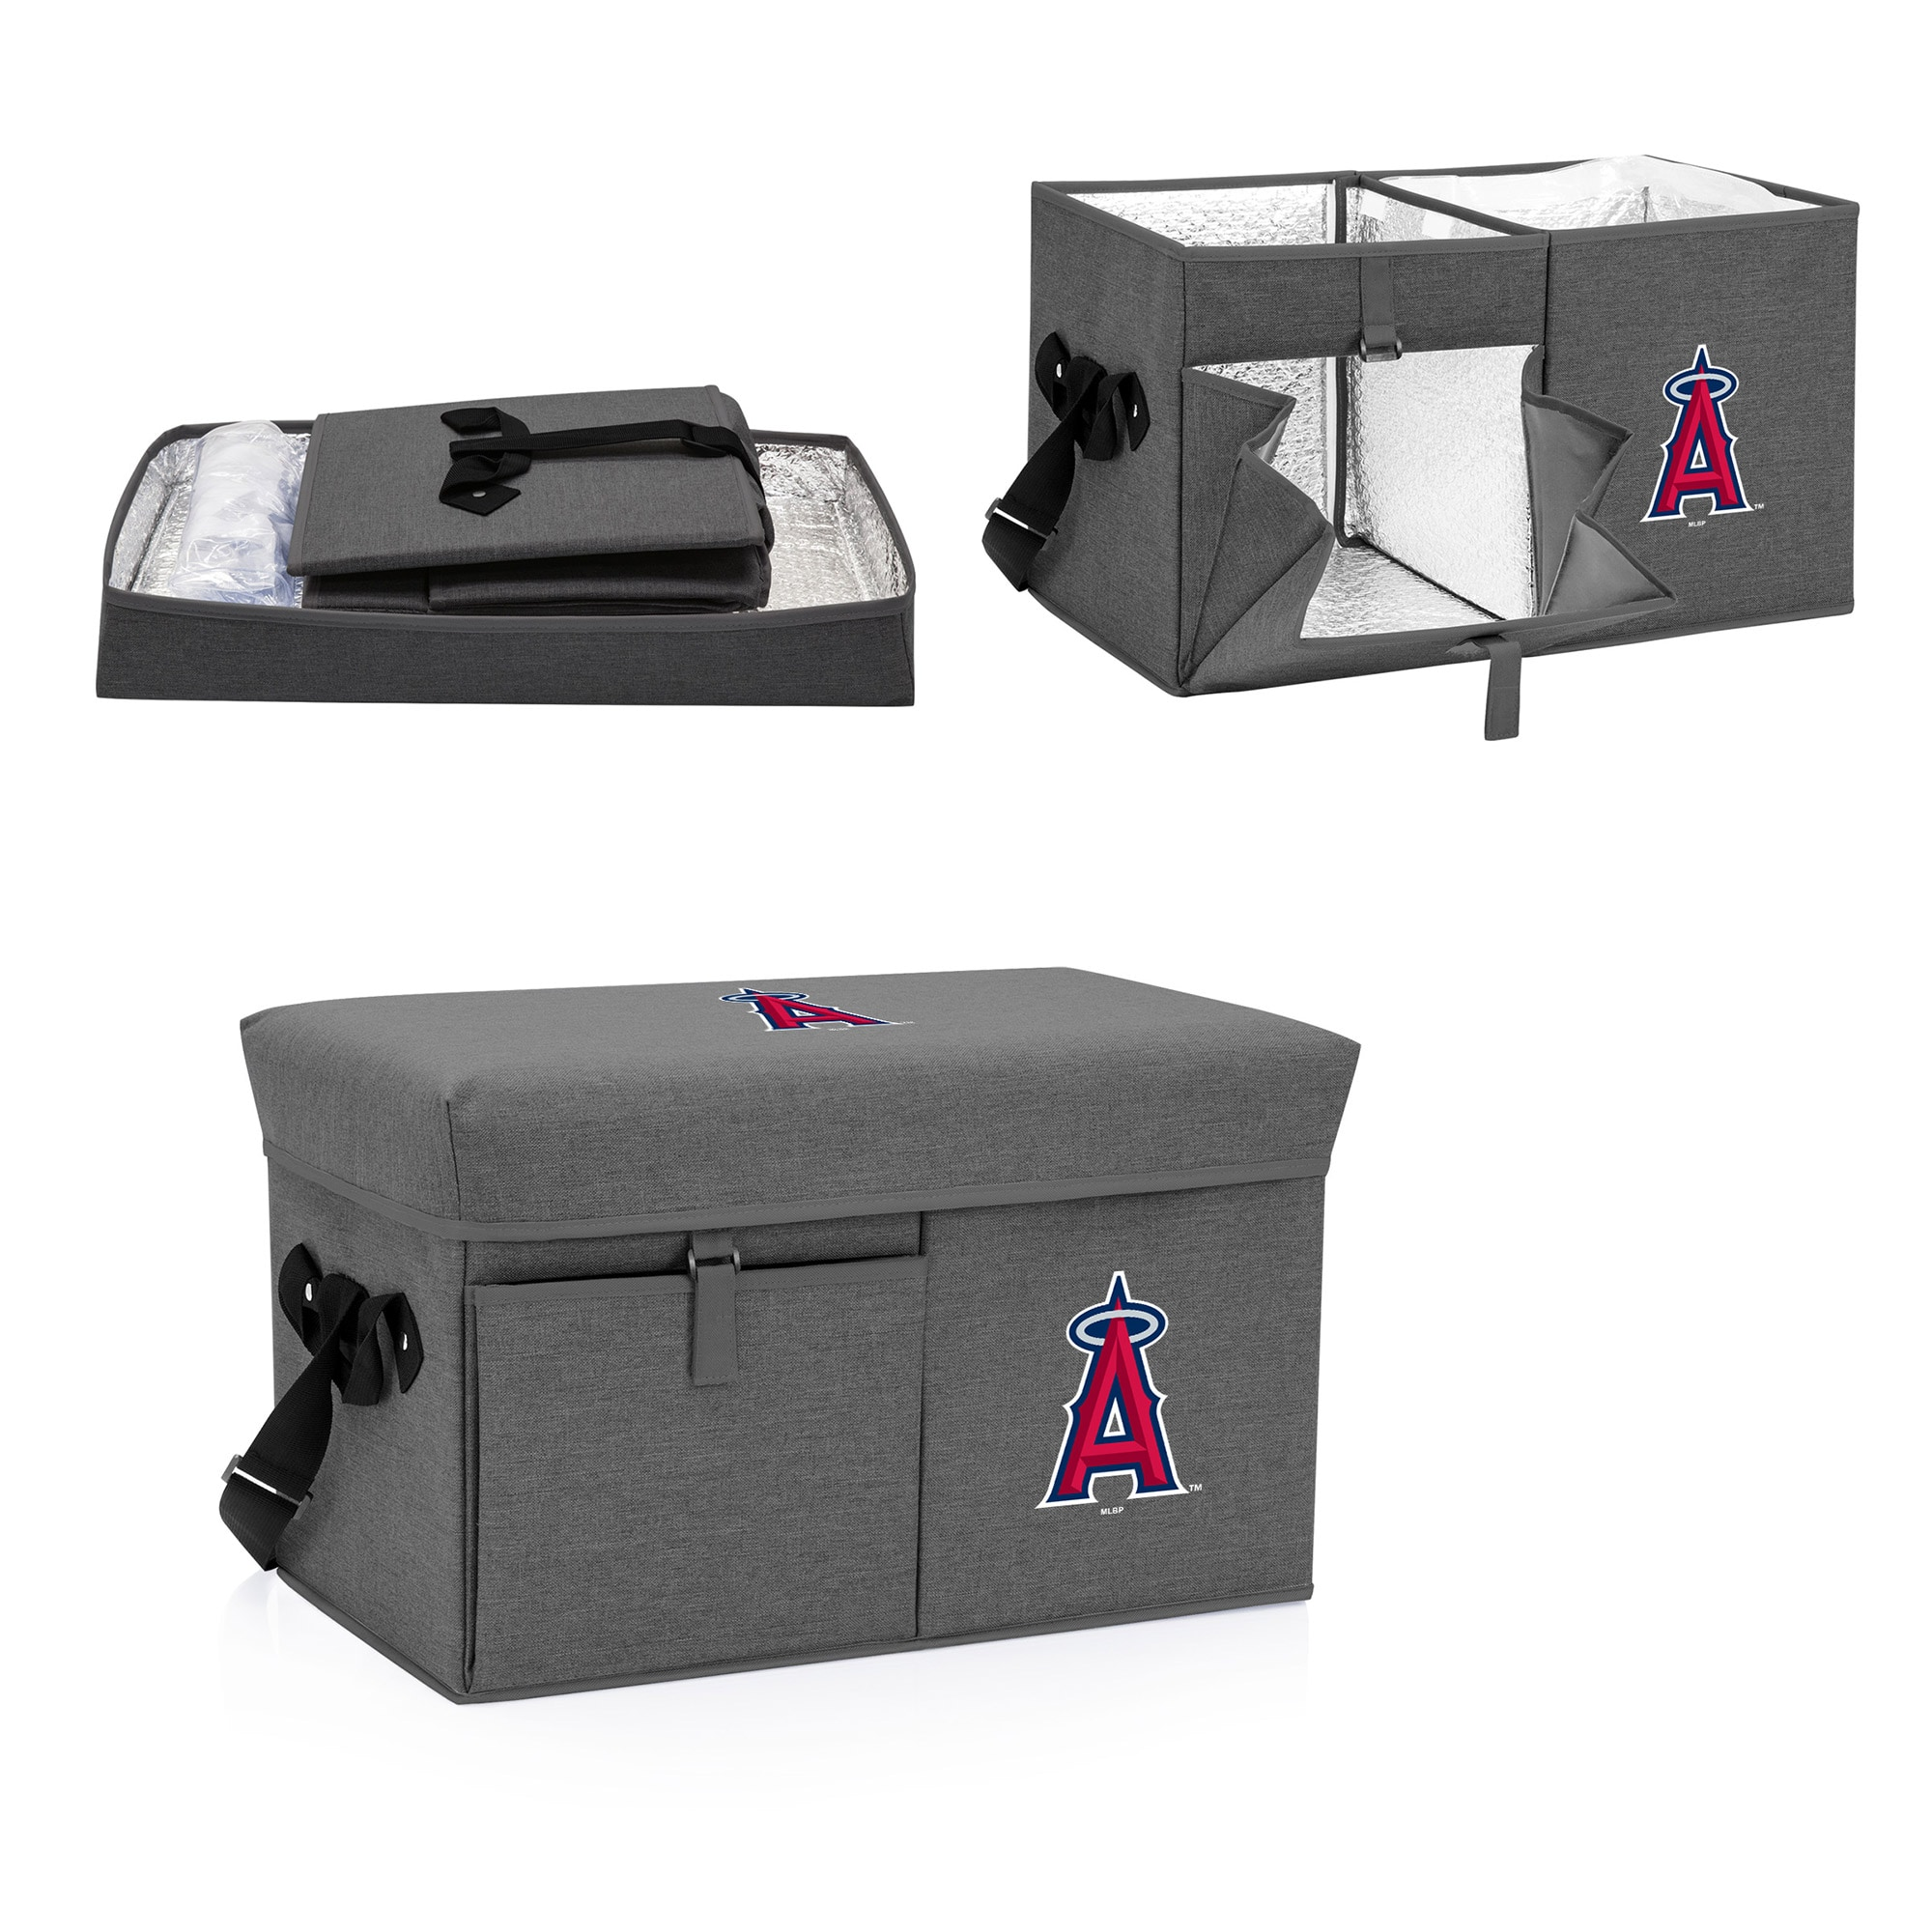 Los Angeles Angels Ottoman Cooler & Seat - Gray